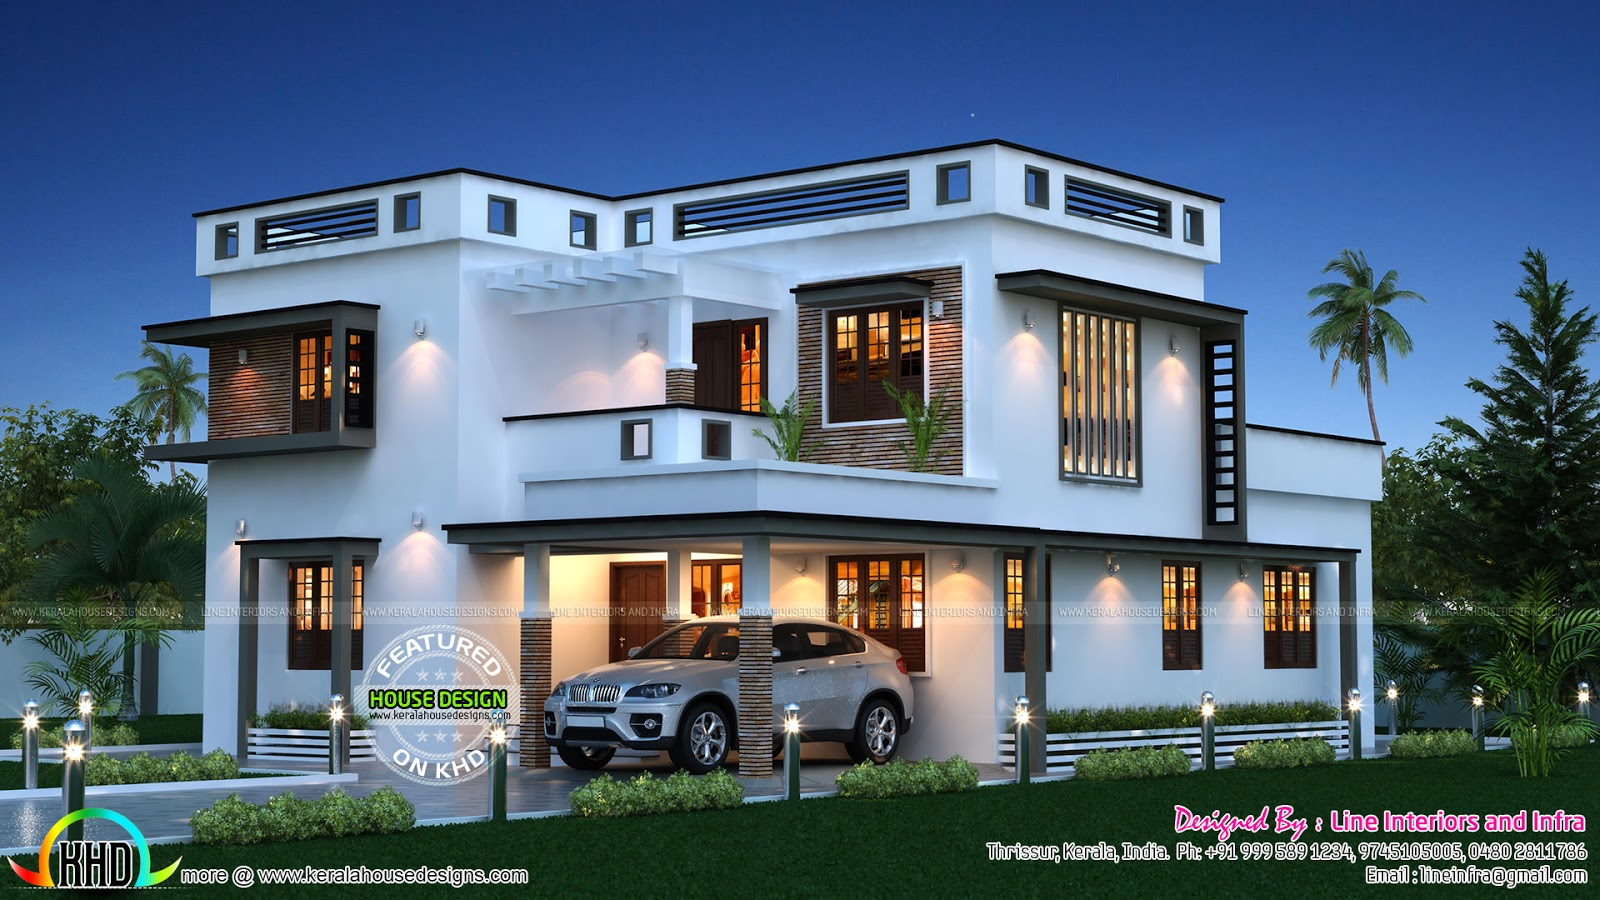 Beautiful 1600 sq ft home kerala home design and floor plans - Home design at sq ...